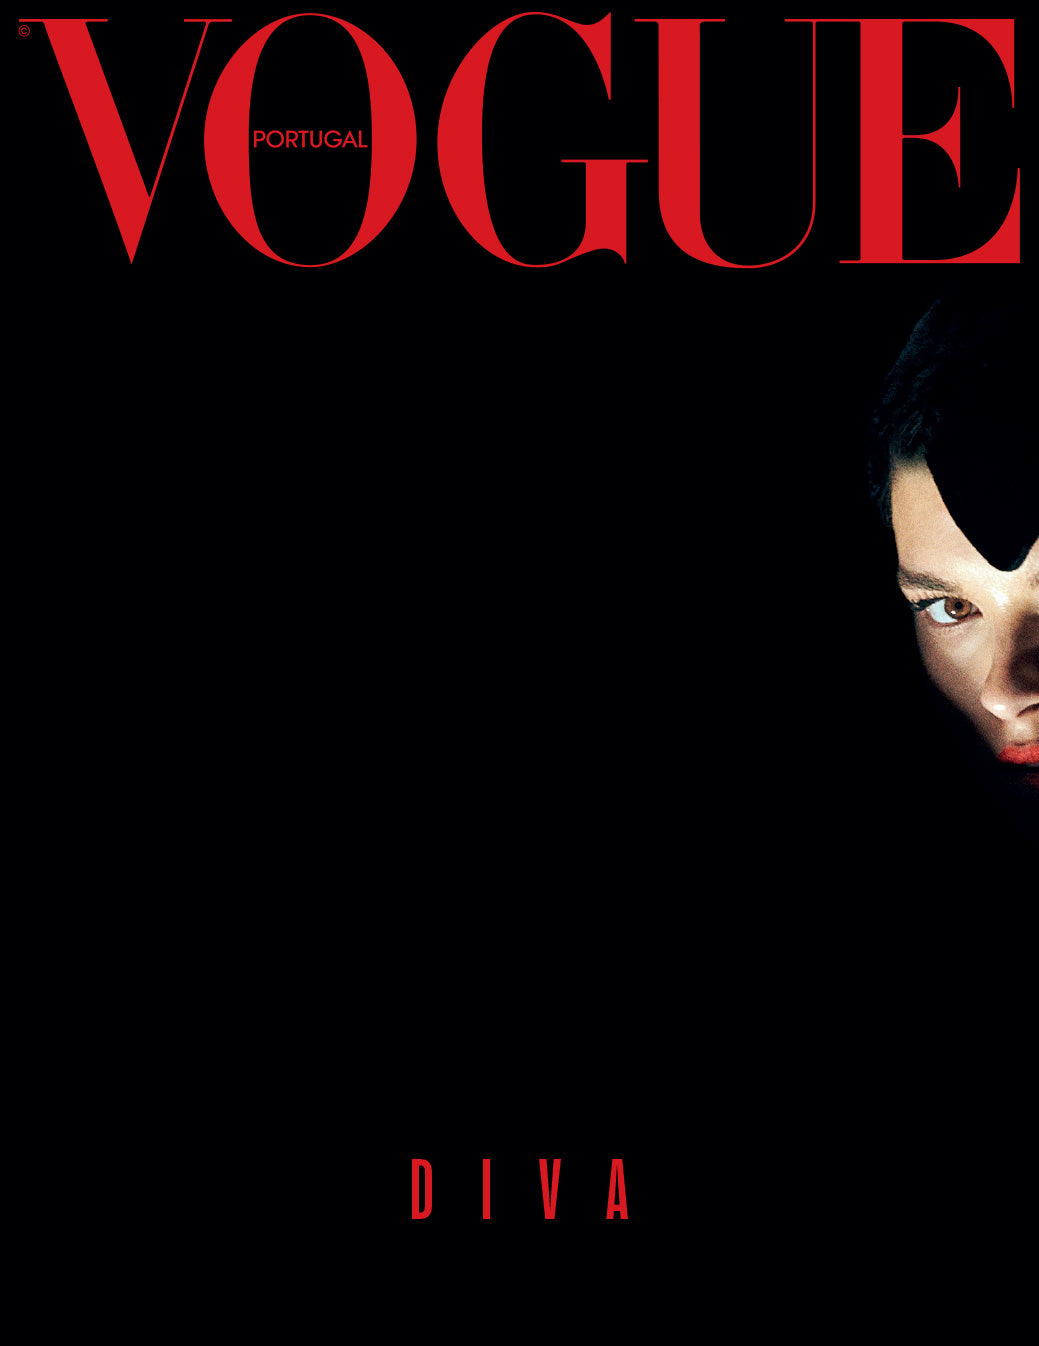 Diva - Cover 3 - poster collection